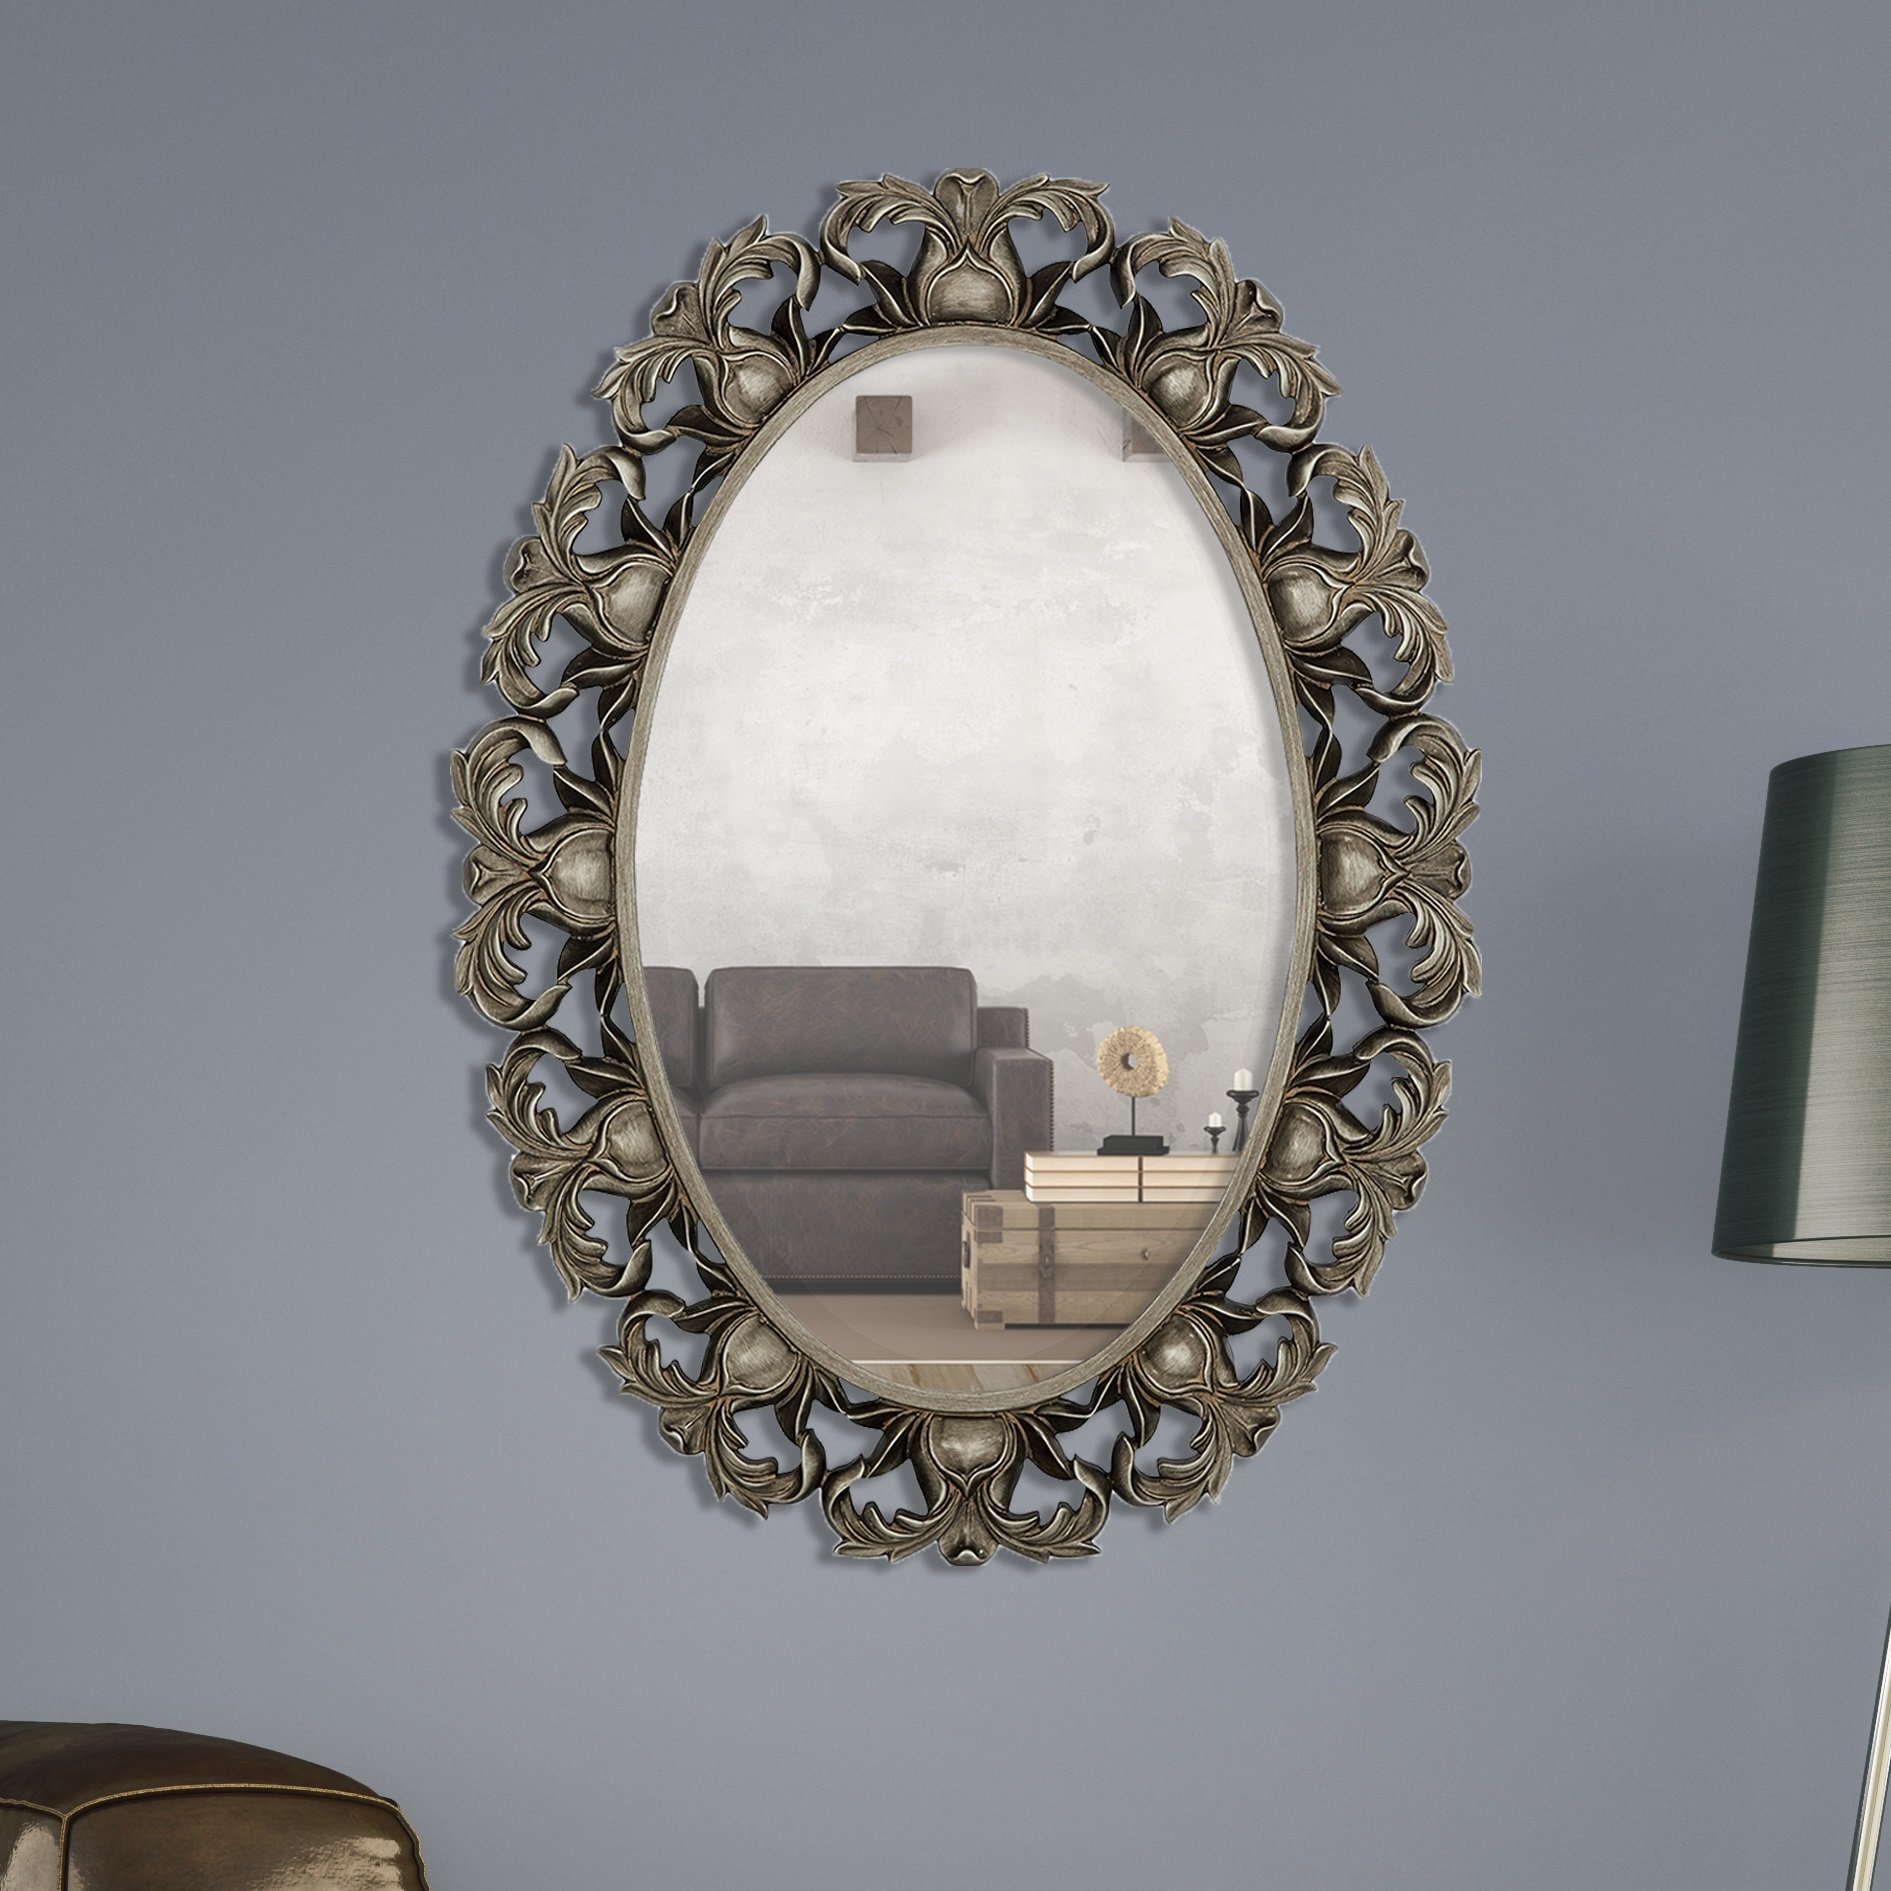 Majestic Mirror Oval Beveled Glass Framed Wall Bathroom For Thornbury Oval Bevel Frameless Wall Mirrors (Image 11 of 20)